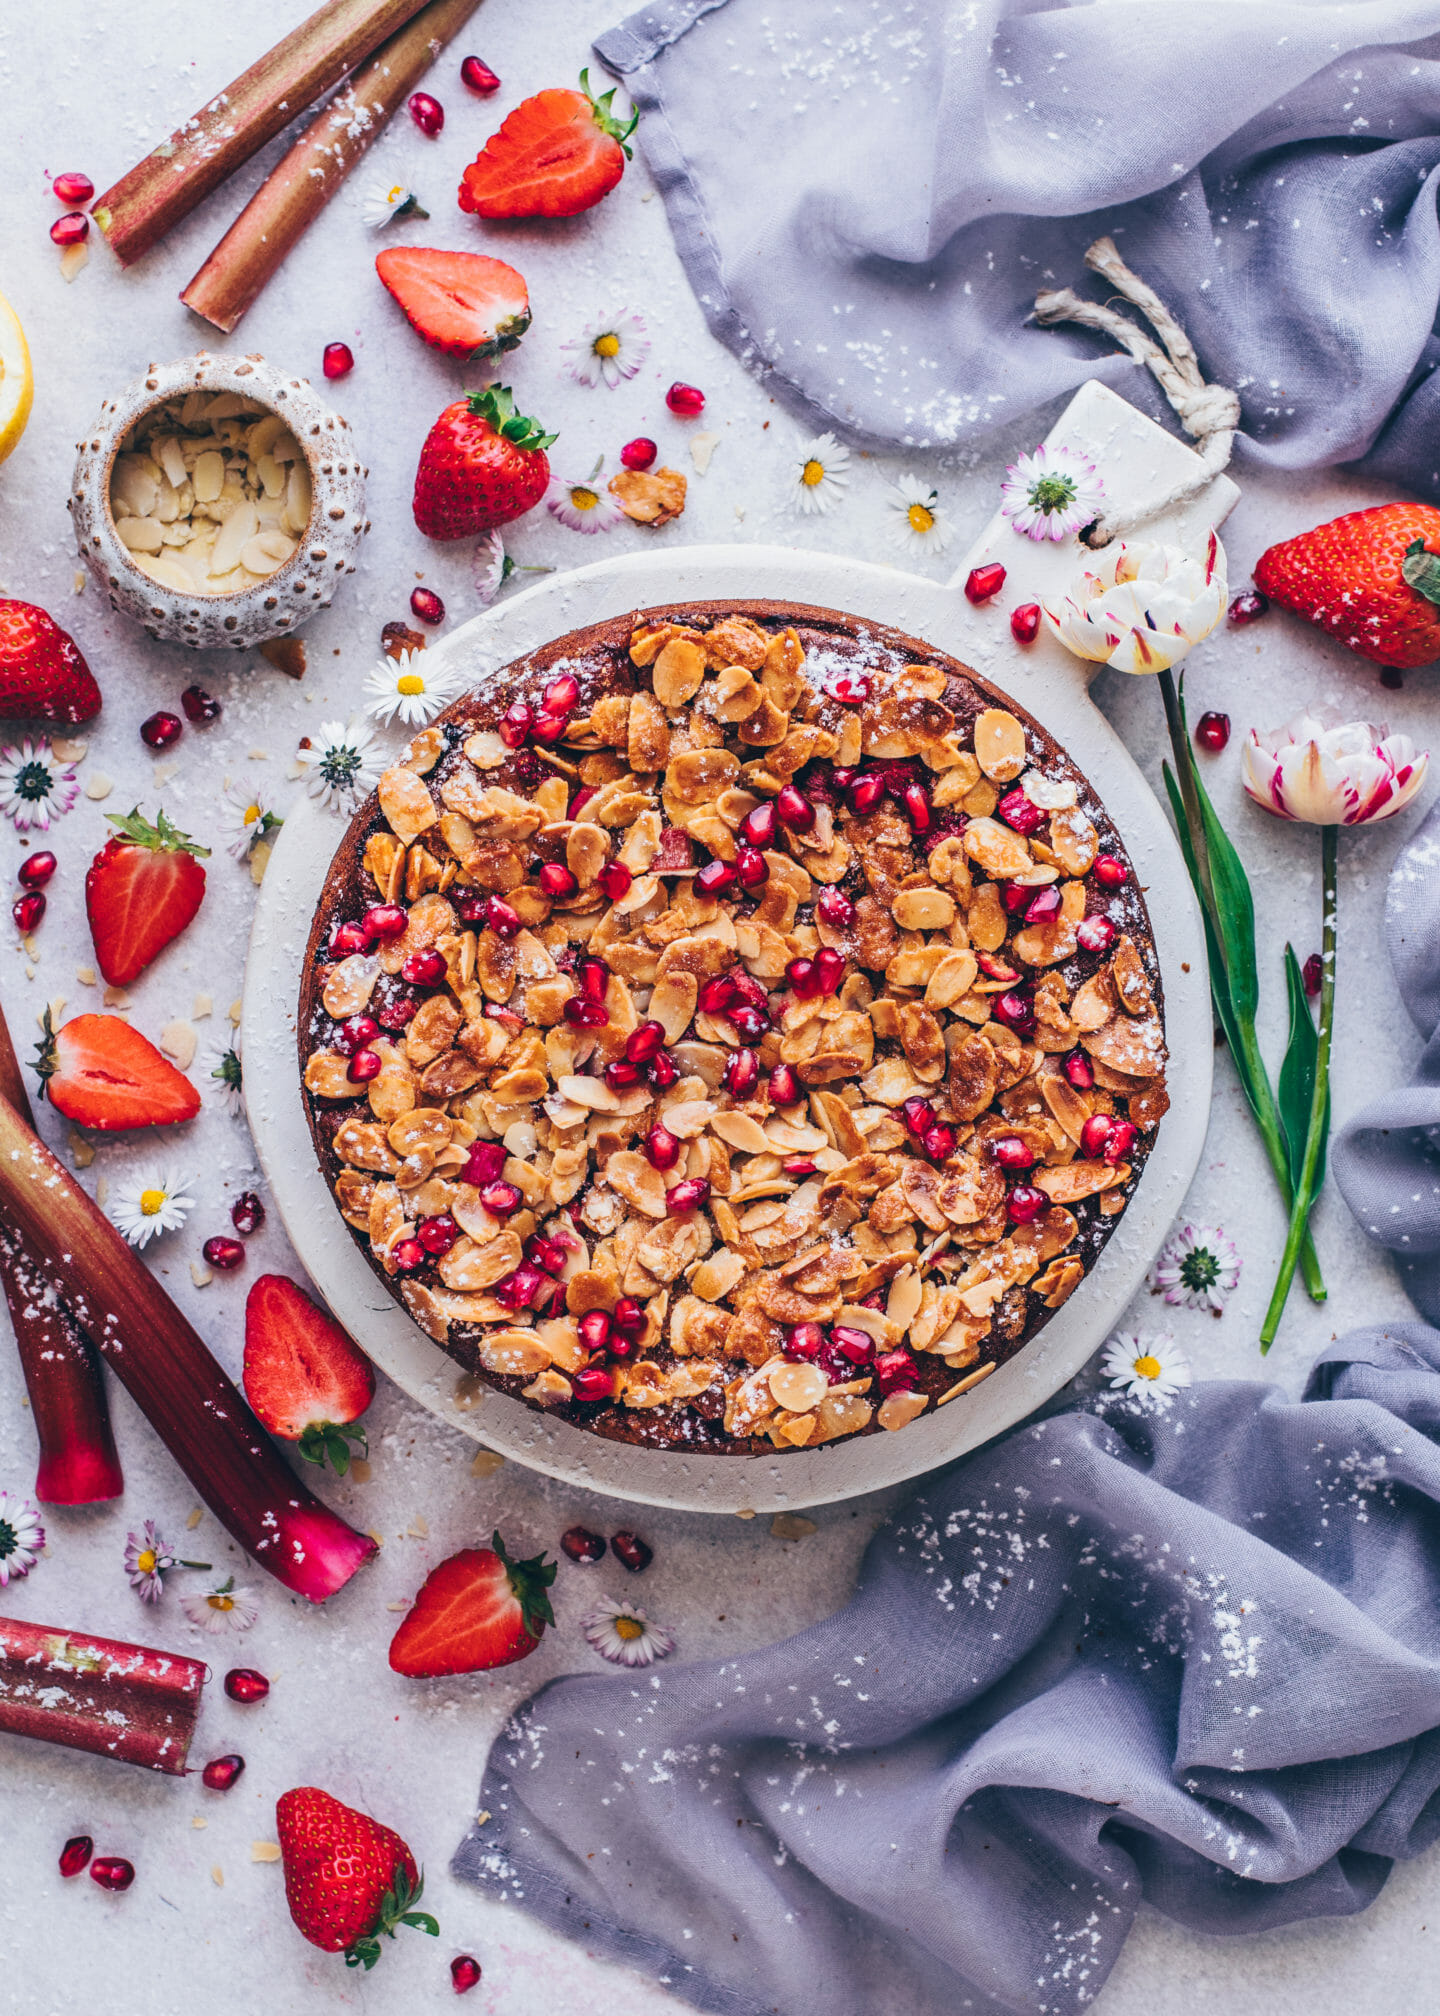 Rhubarb Cake with Strawberries, Almonds and pomegranate (food photography, food styling)